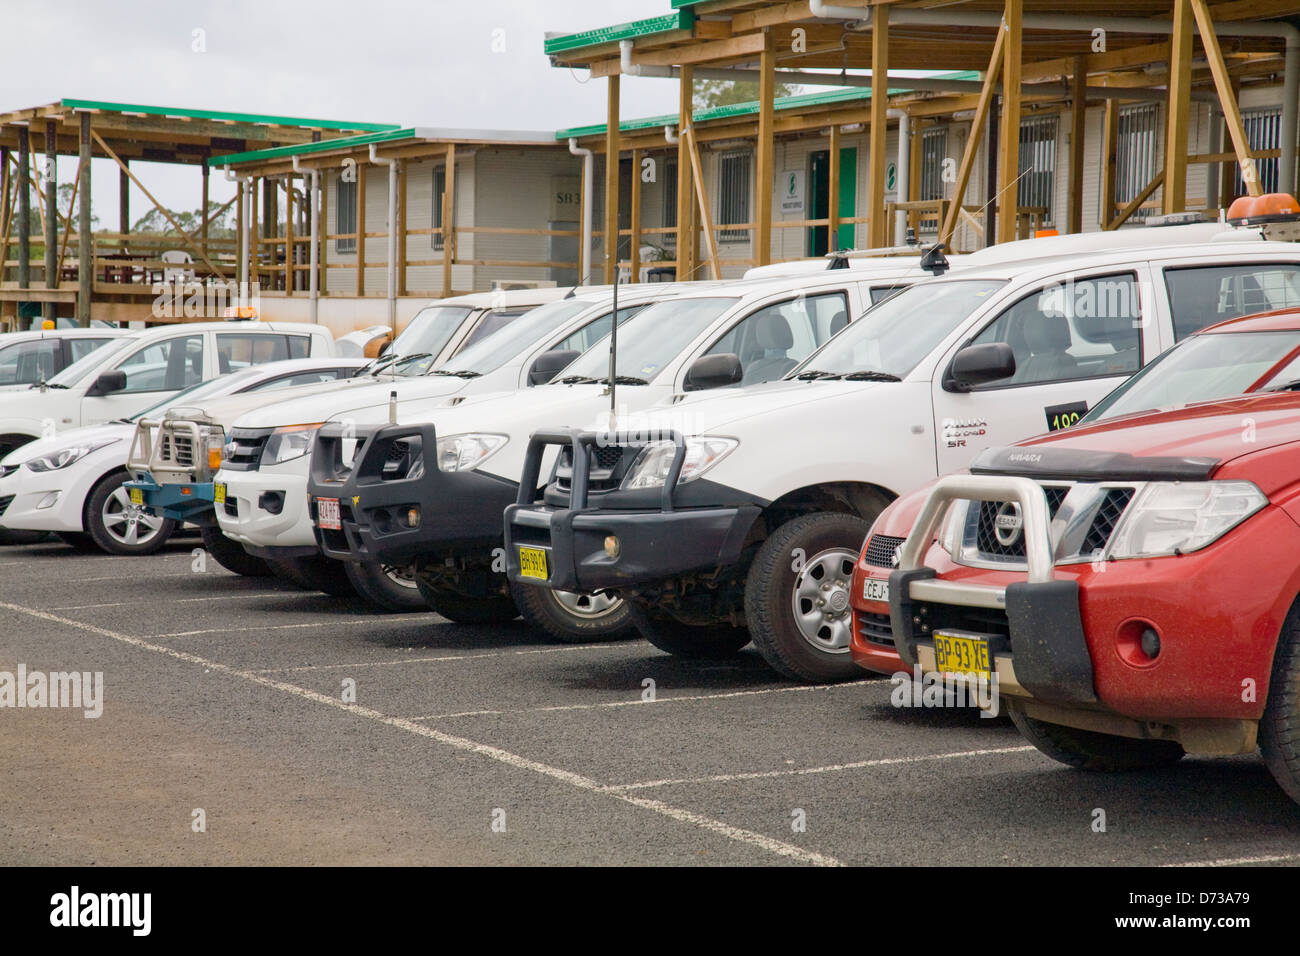 row of utes parked in a construction site compound Stock Photo